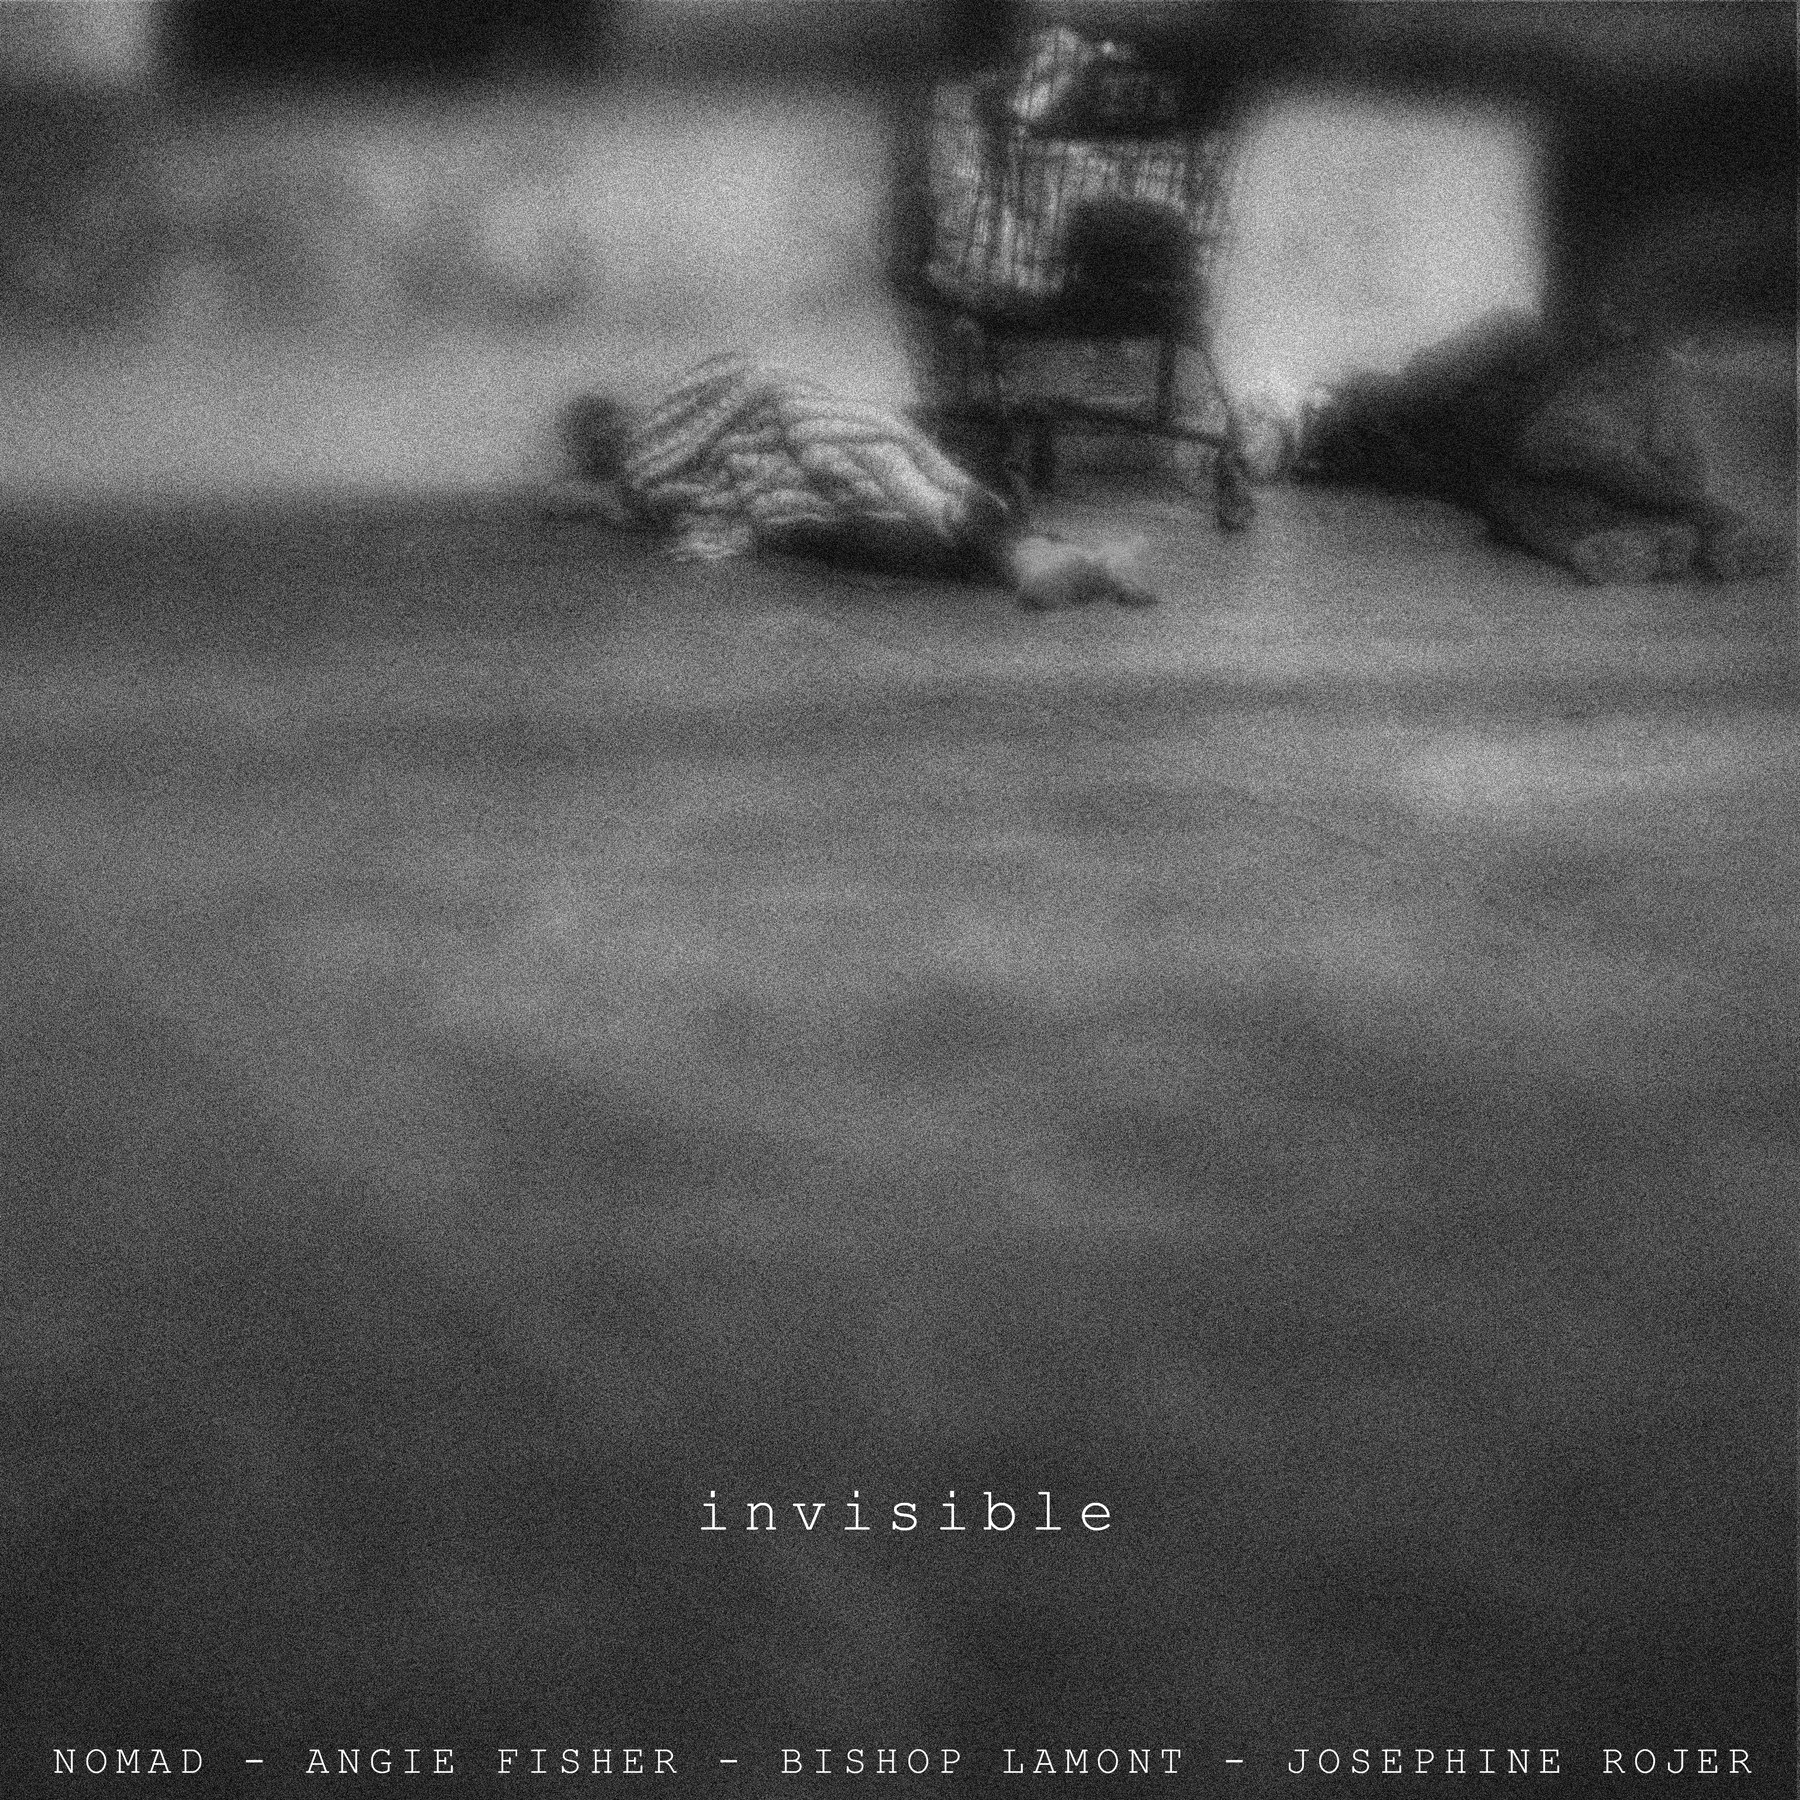 INVISIBLE_COVER ART_FINAL.jpg